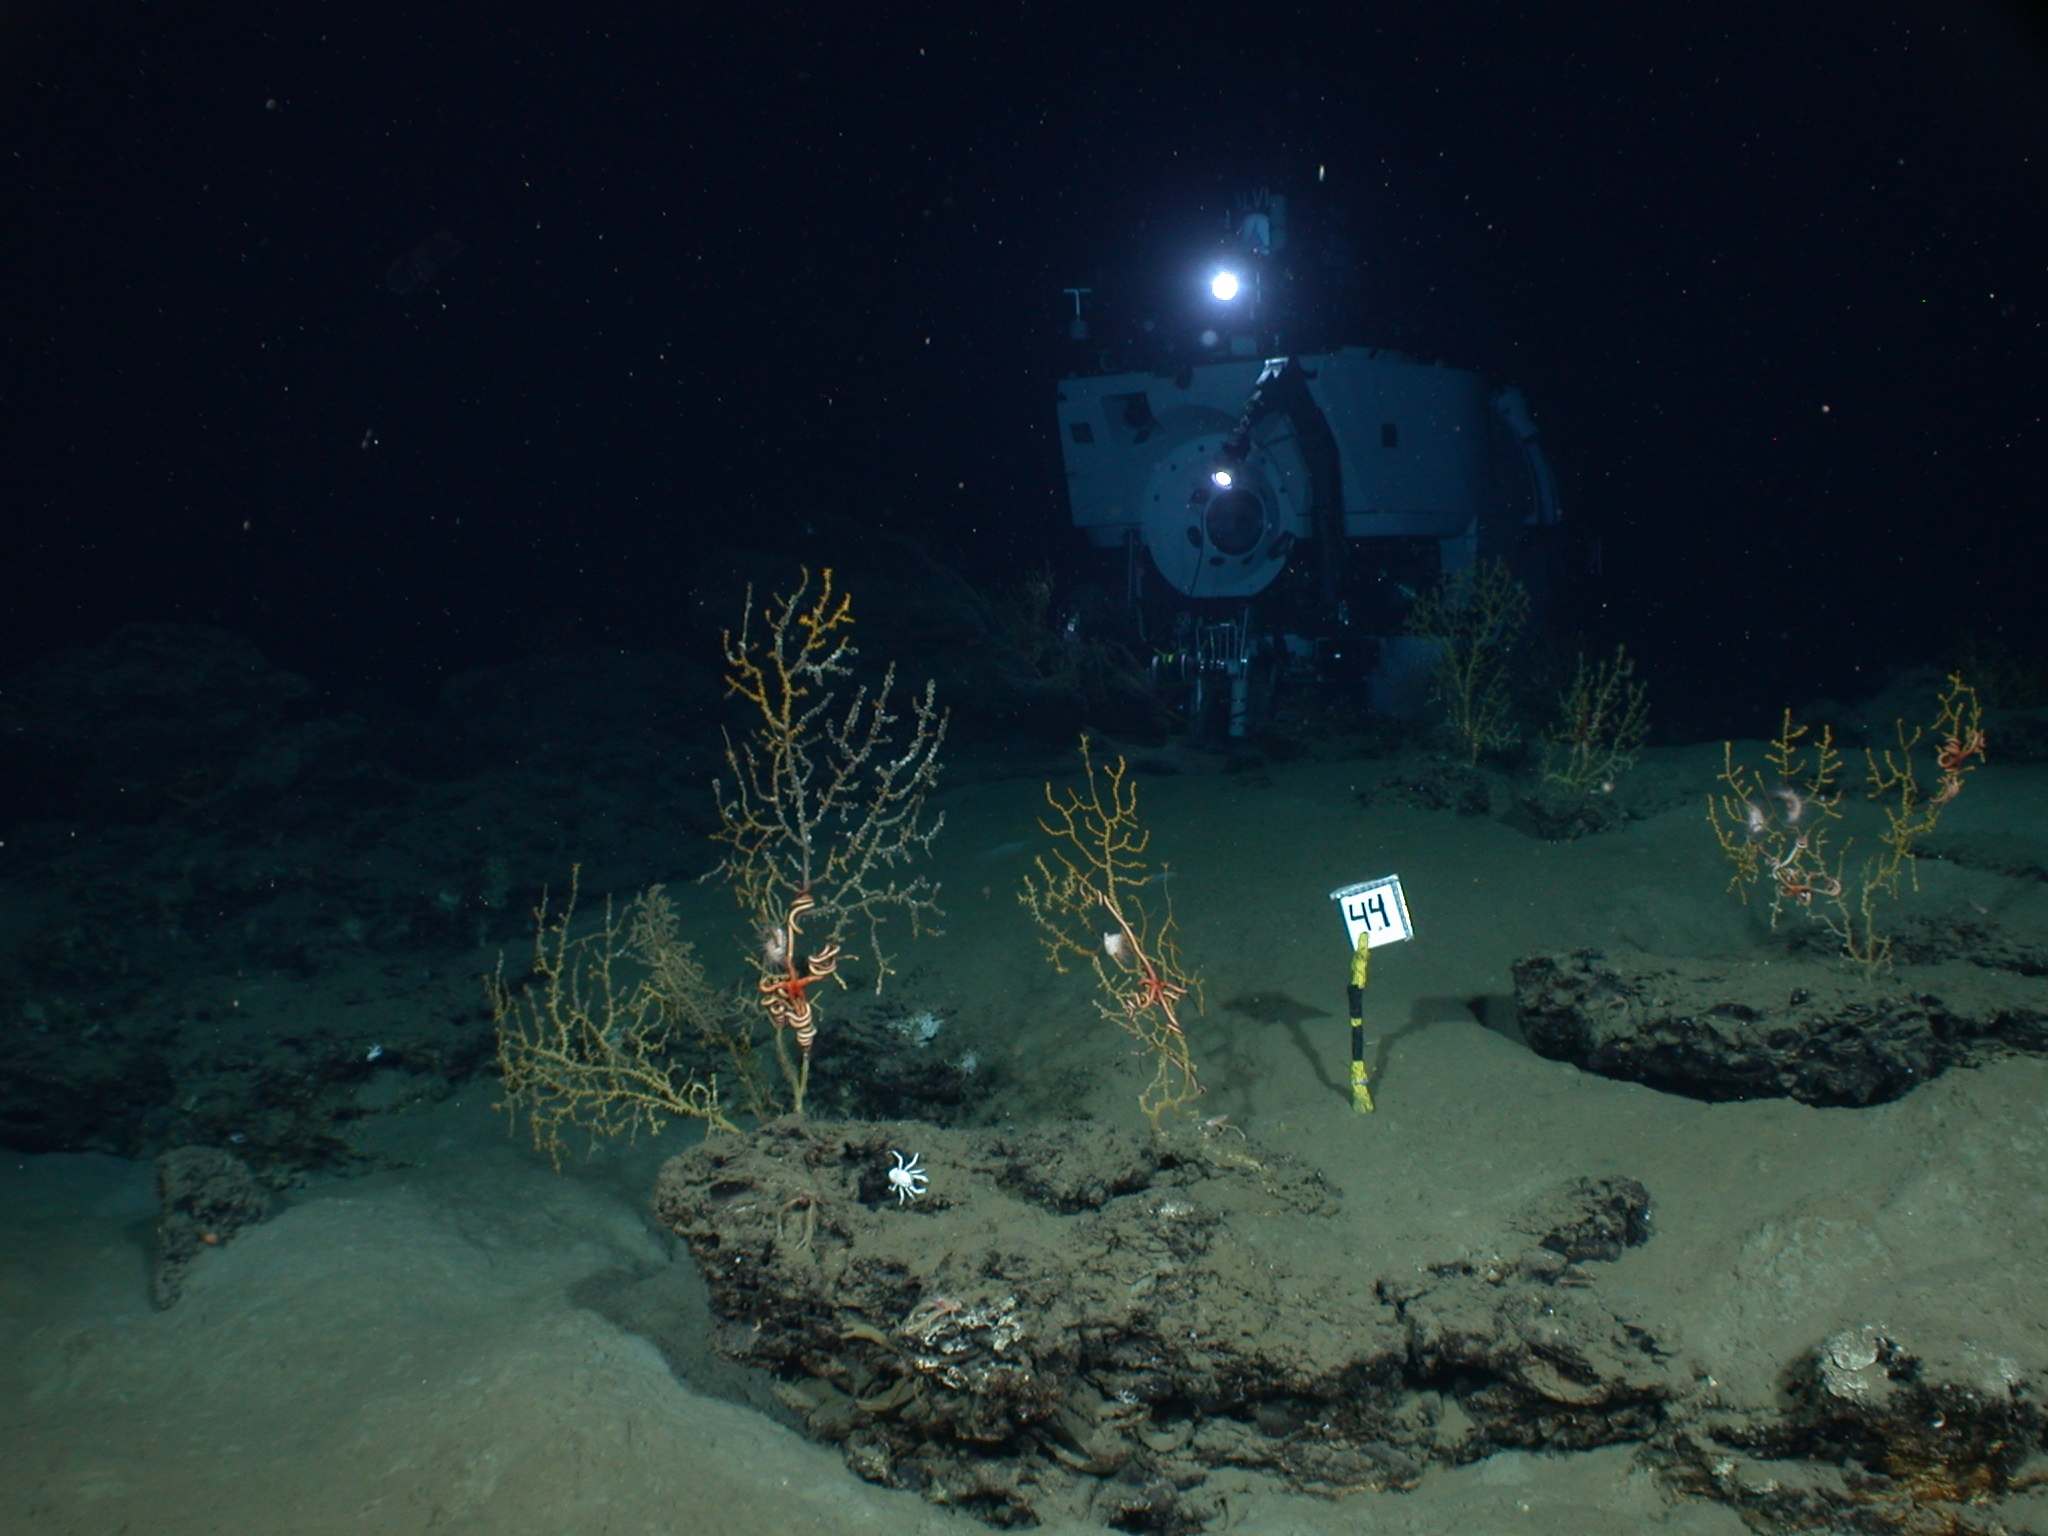 Study Shows Gulf Oil Spill Harmed Deep Sea Coral Science